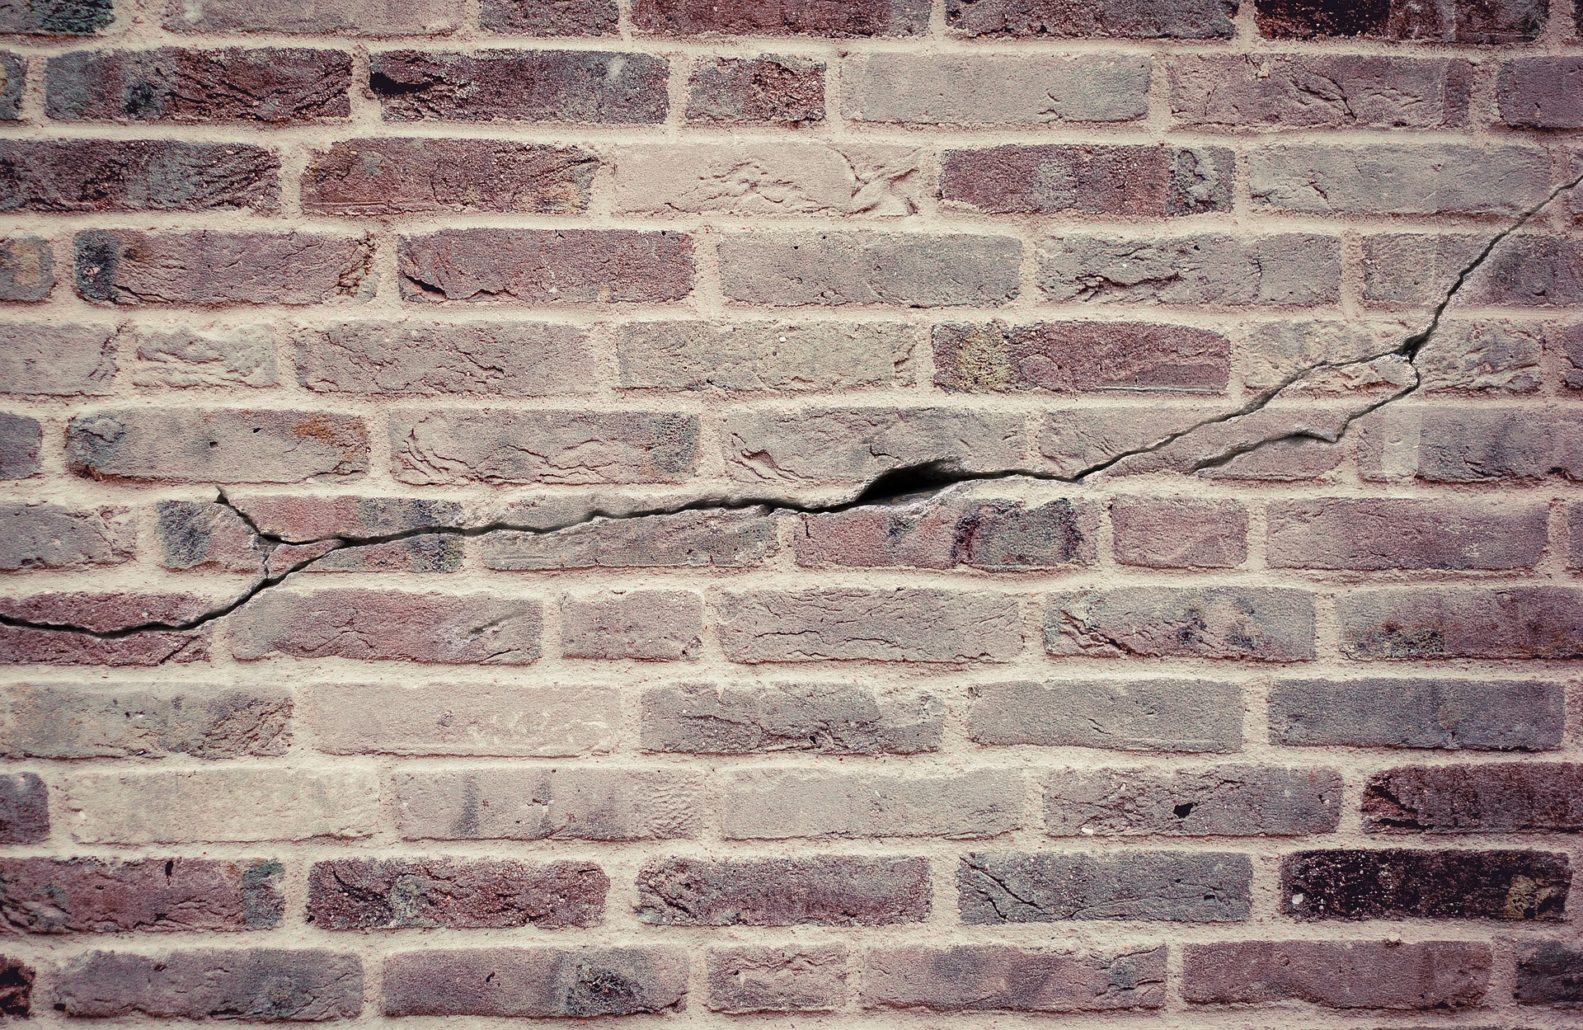 A crack in a wall-a common sign of subsidence.